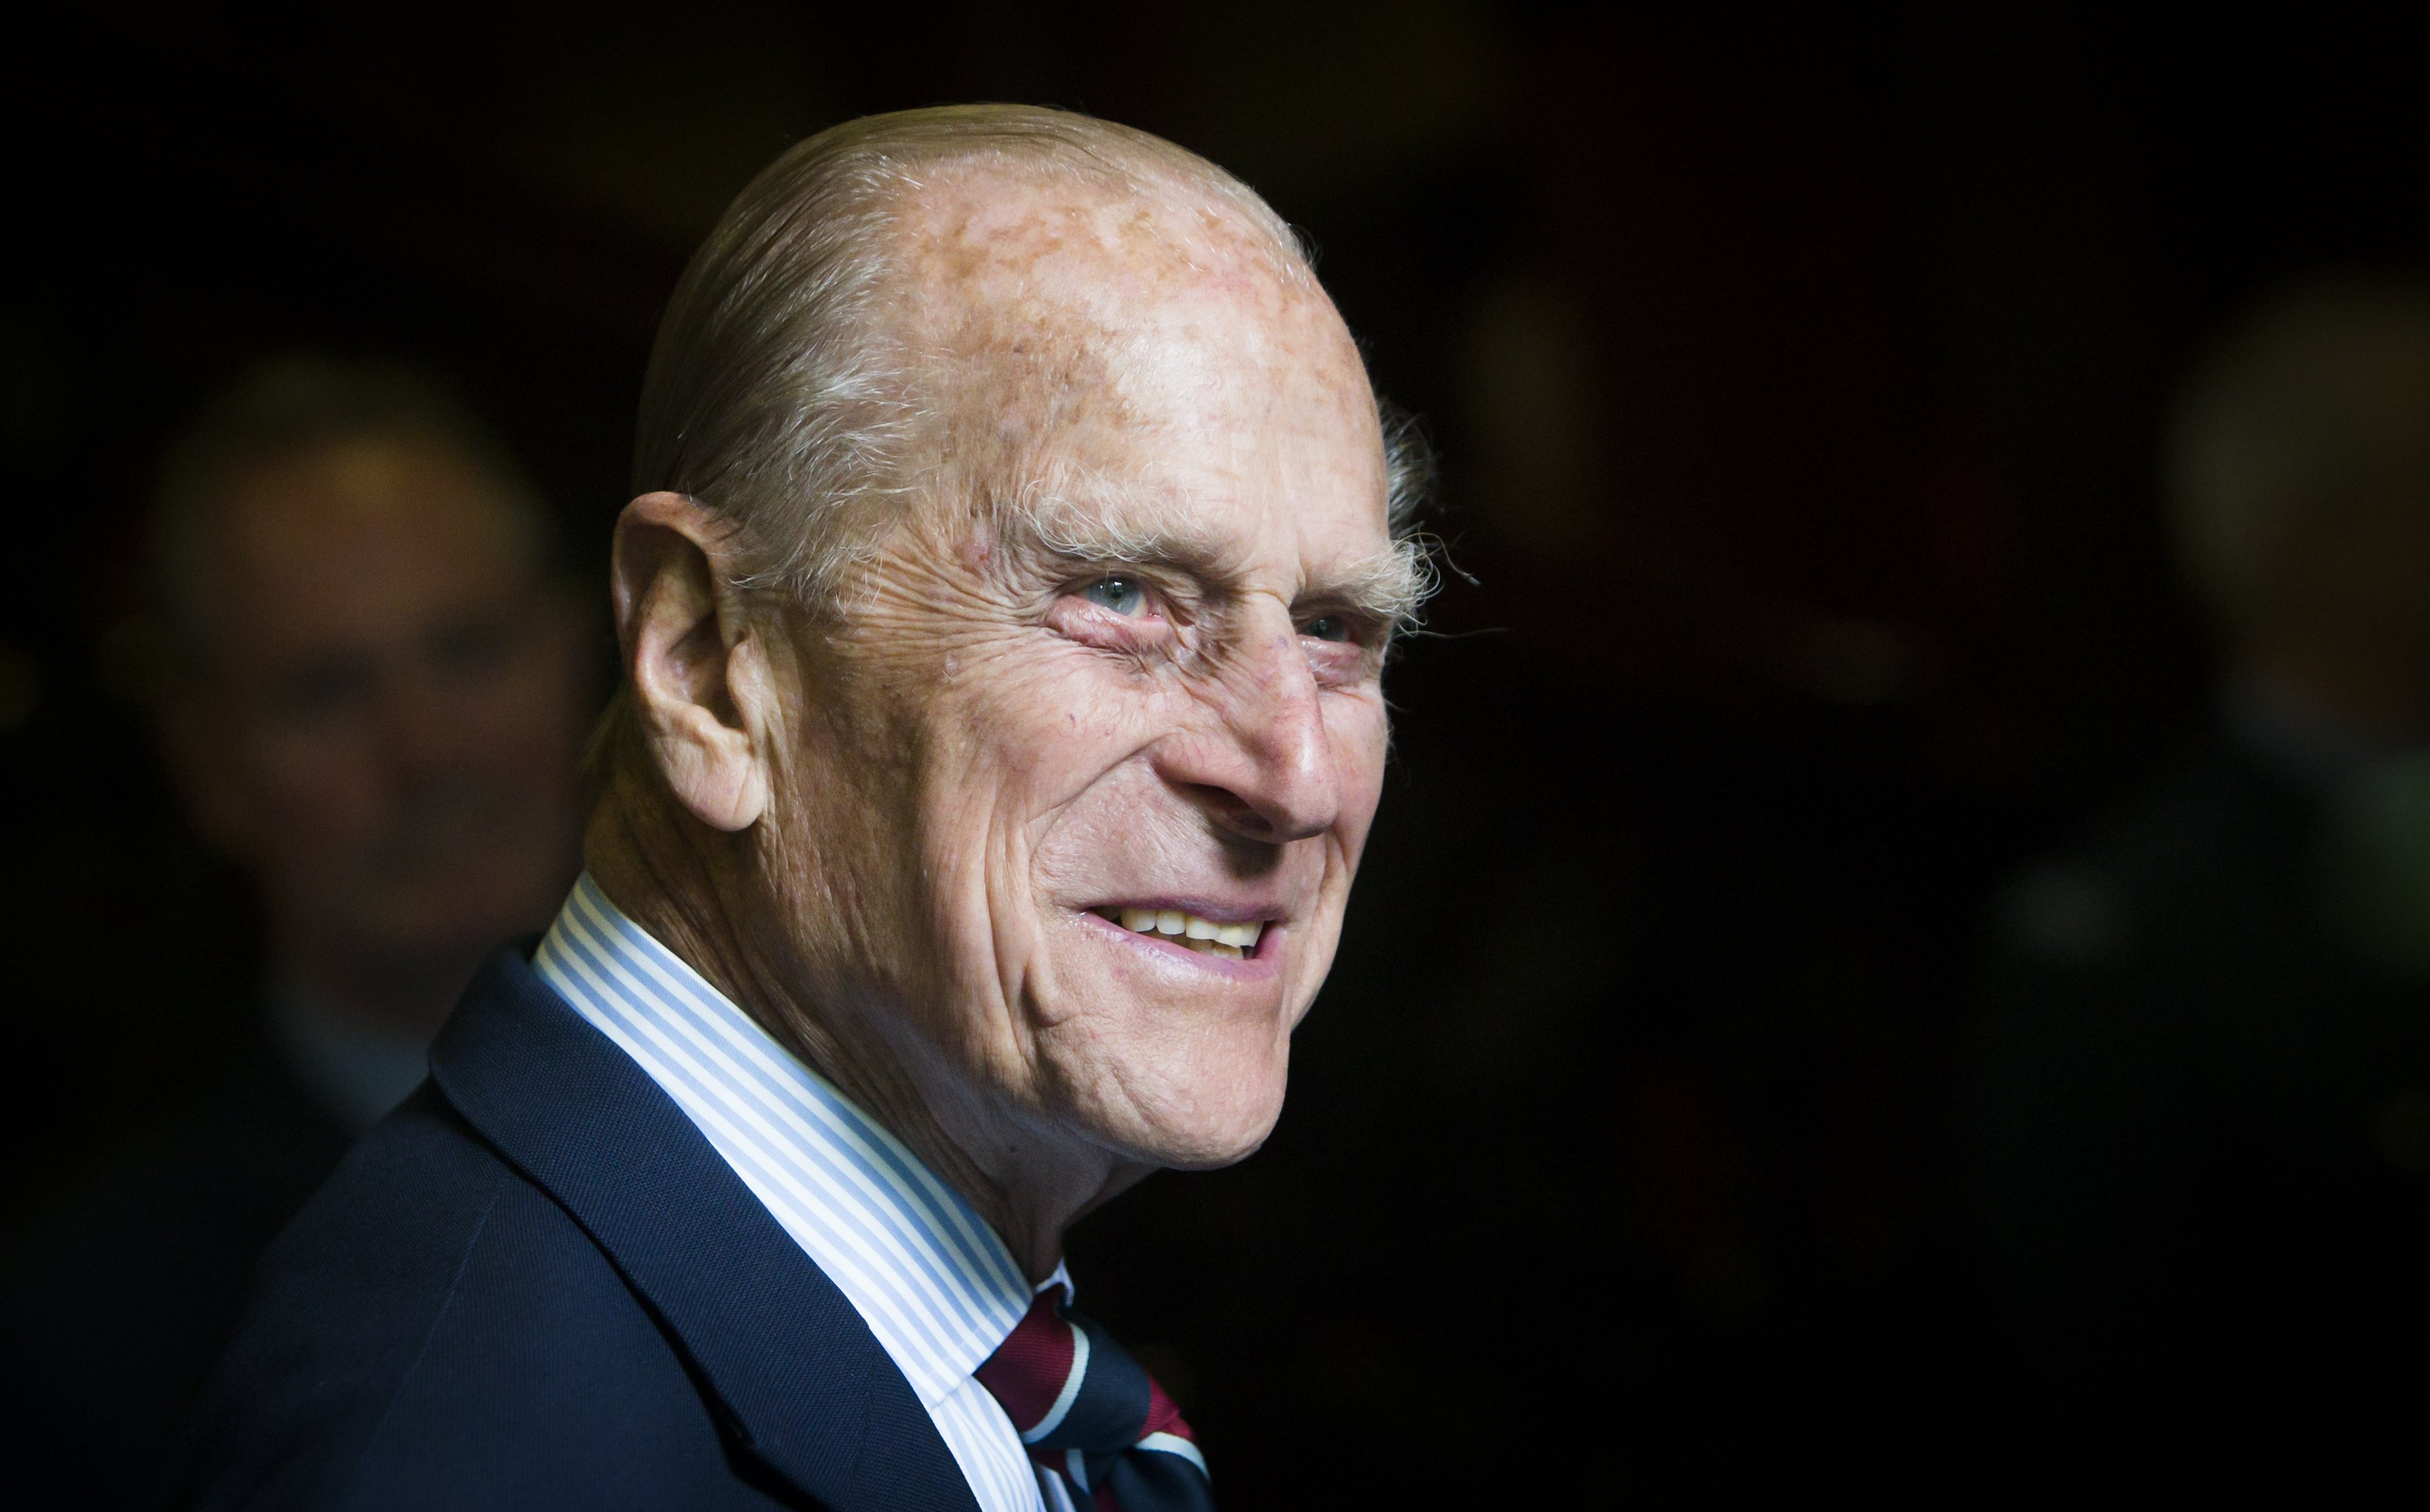 Prince Philip during a visit to the headquarters of the Royal Auxiliary Air Force on July 4, 2015, in Edinburgh, Scotland. | Source: Getty Images.